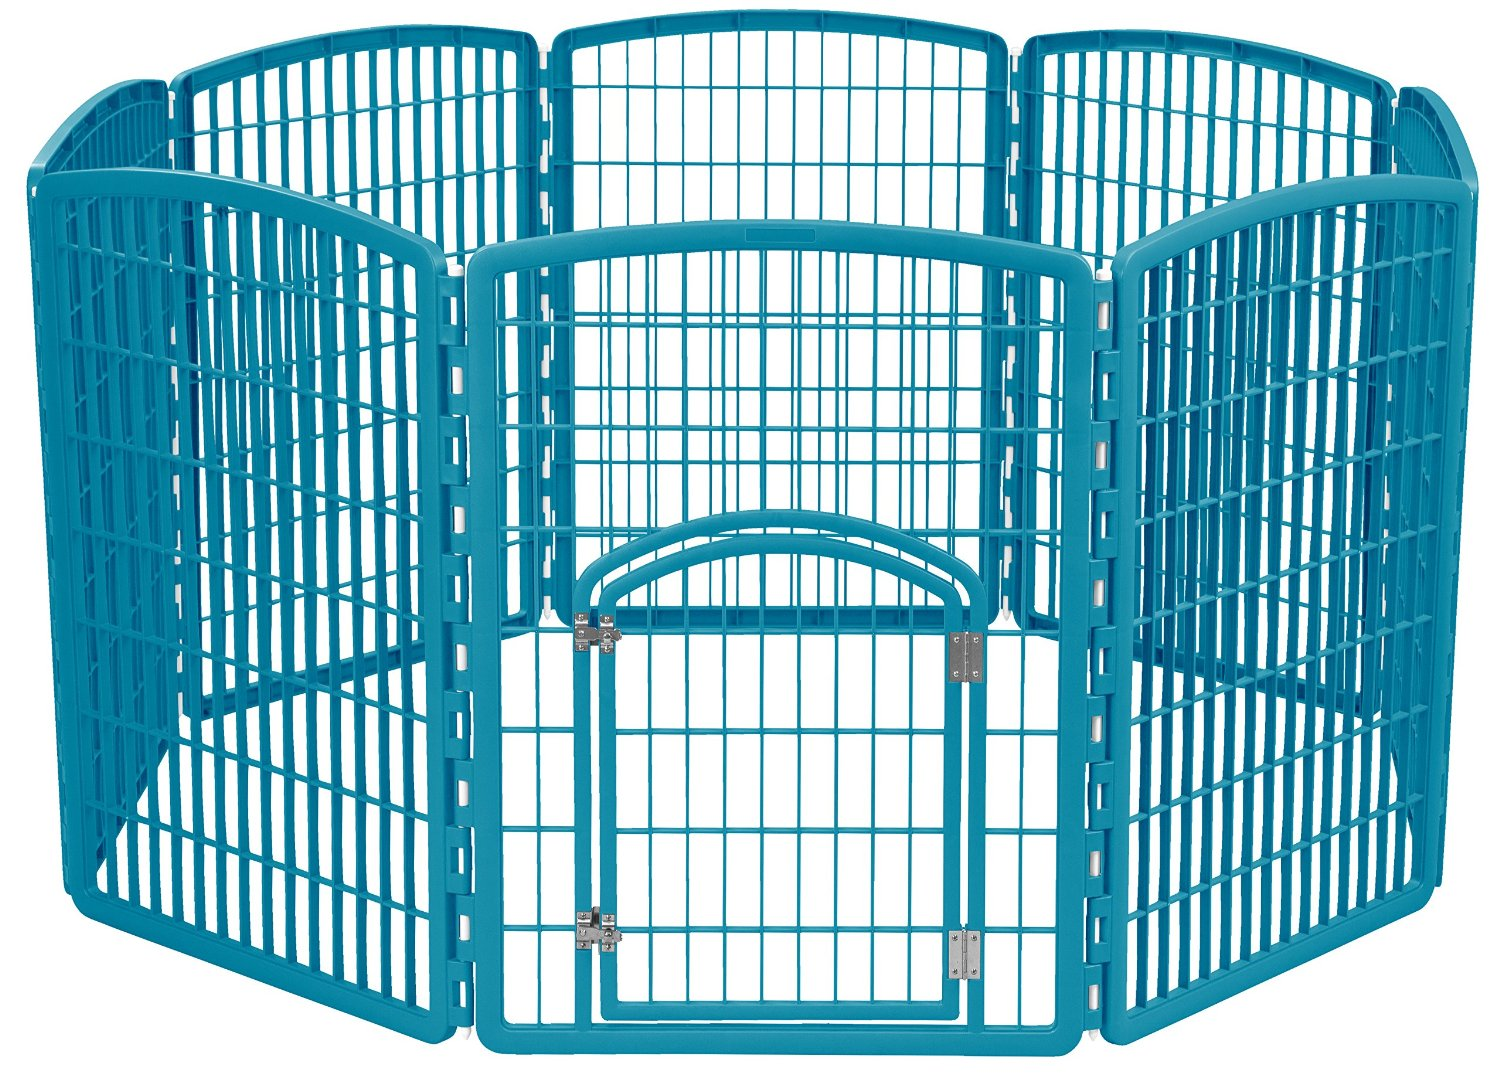 indoor dog playpen available in various colors